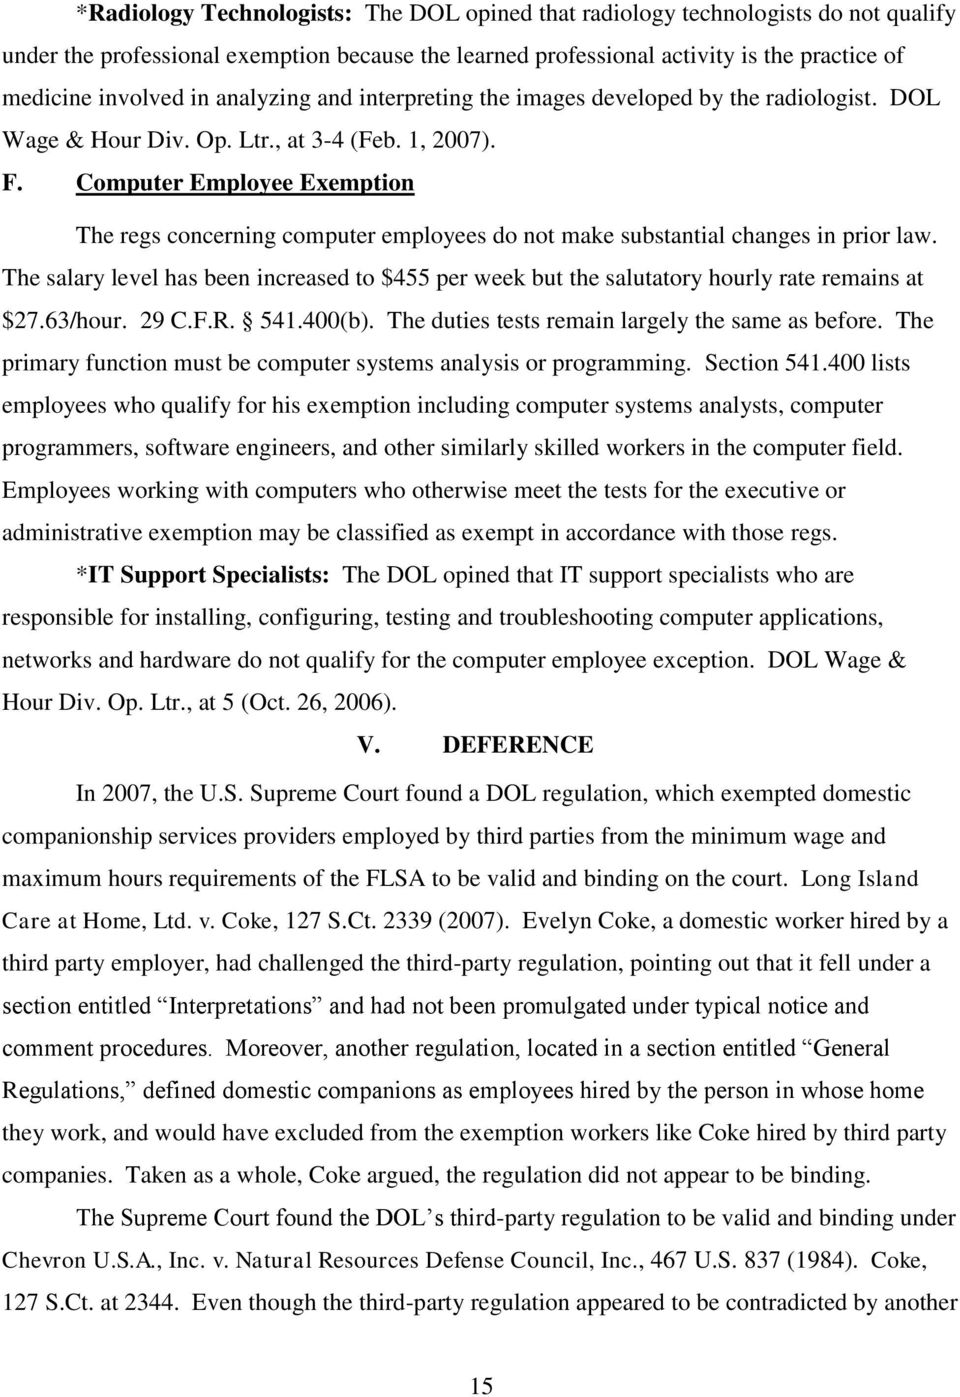 Computer Employee Exemption The regs concerning computer employees do not make substantial changes in prior law.